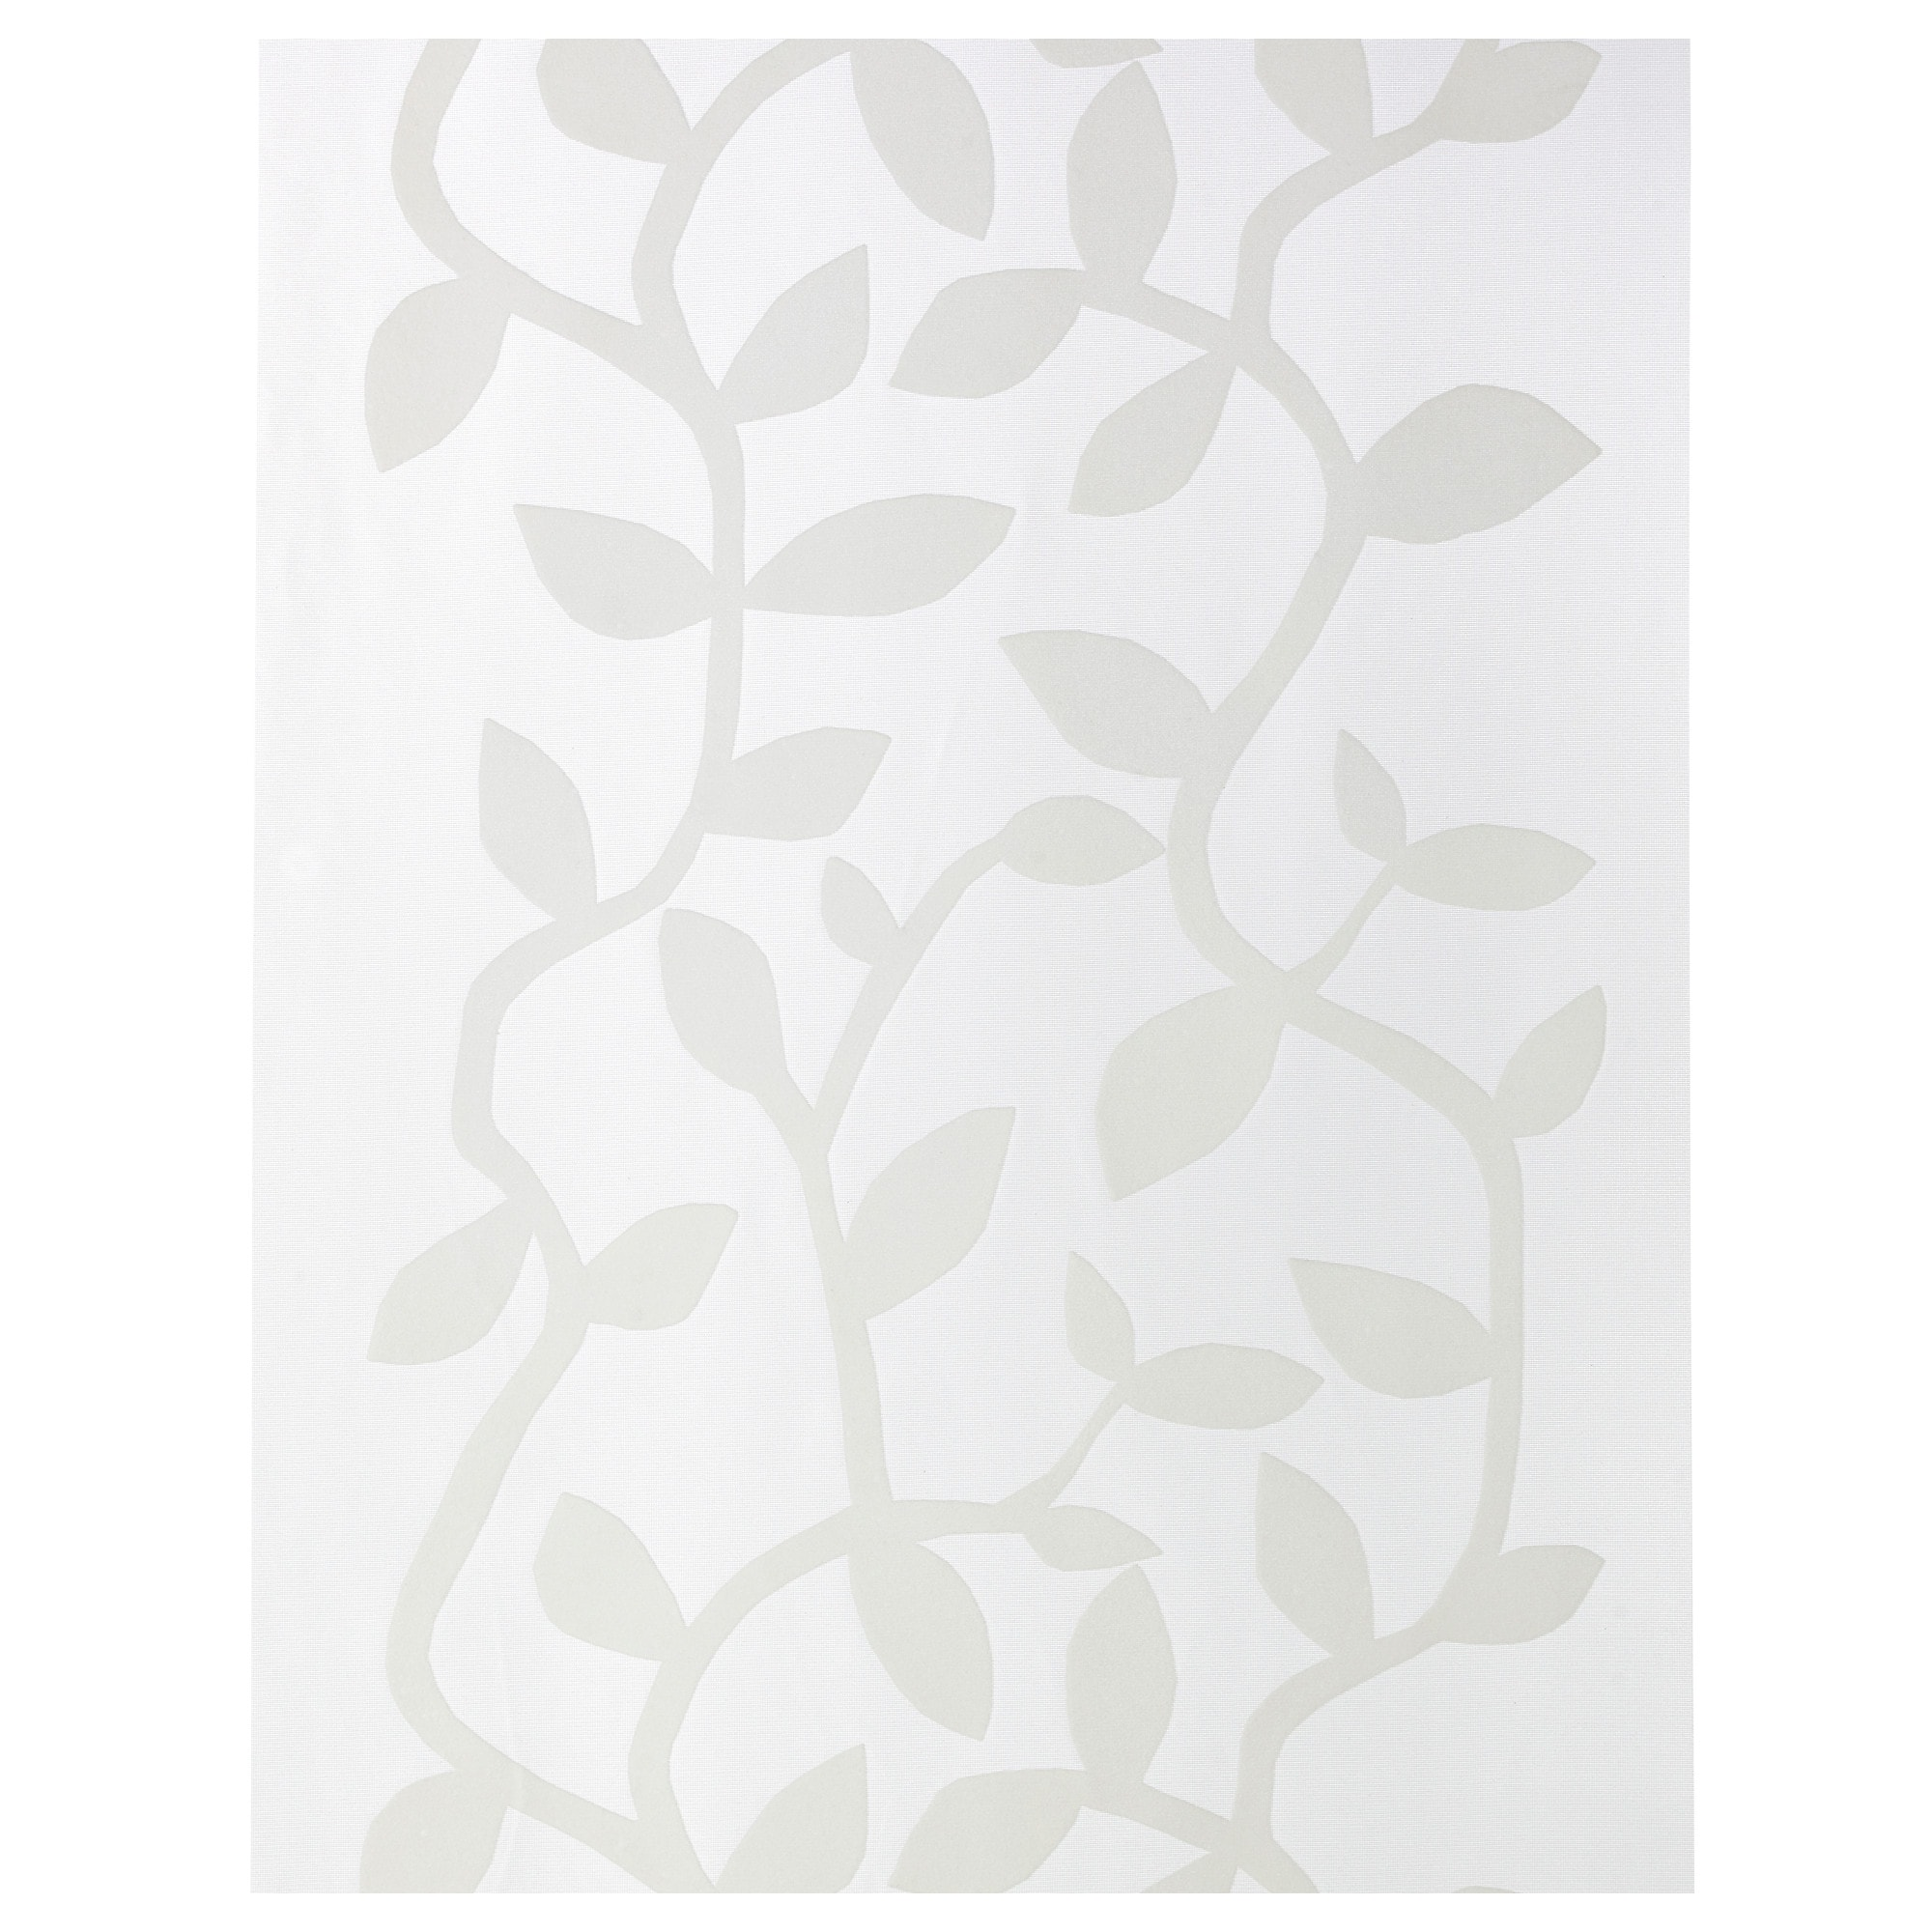 Ikea panel curtains - Inter Ikea Systems B V 2011 2017 Cookie Policy Personal Data Privacy Notice Terms Conditions For Sale Of Products And Services